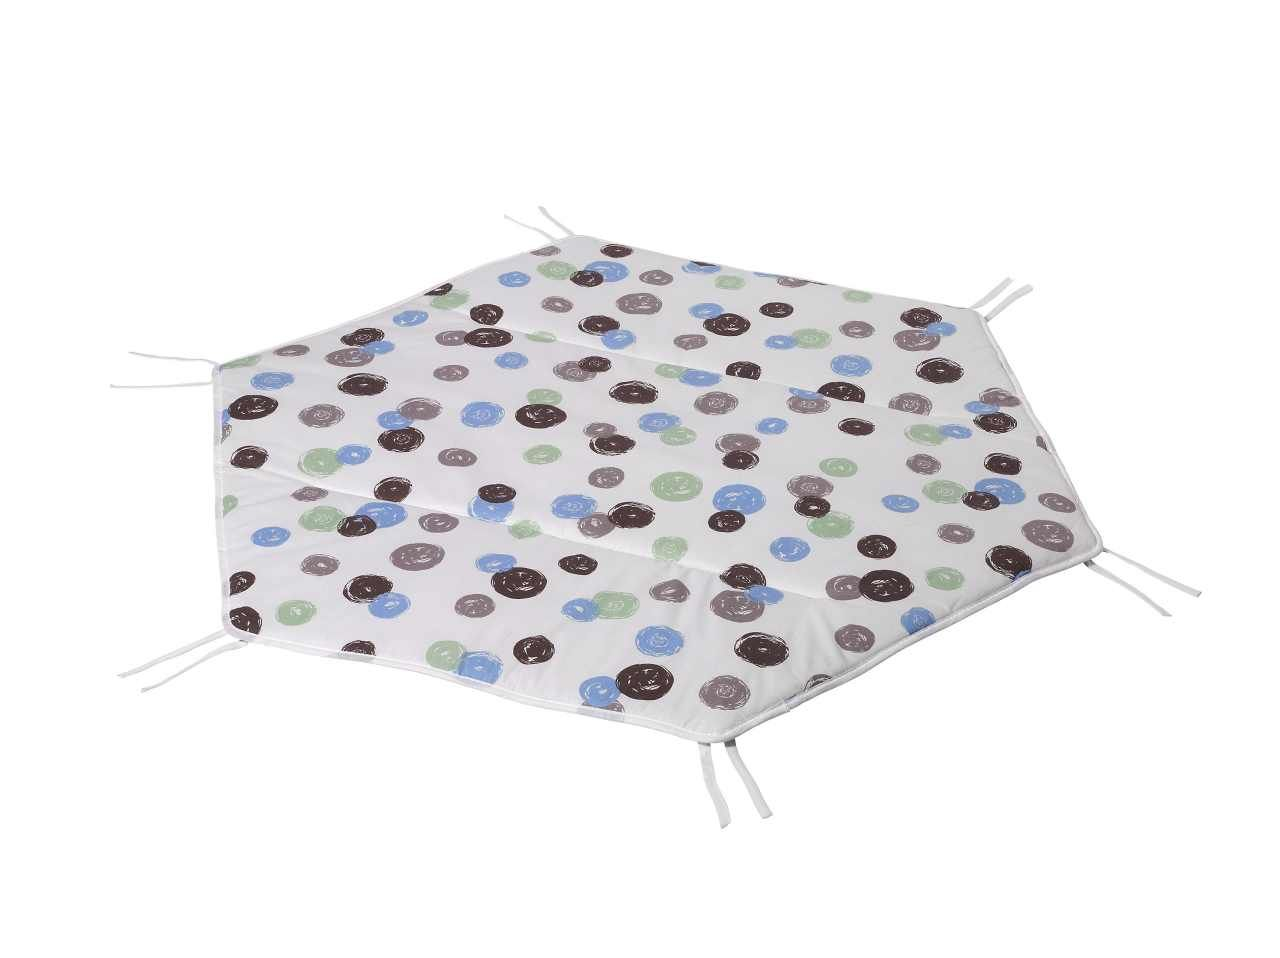 Tapis de parc pour parc Matrix 97 x 112 cm GEUTHER